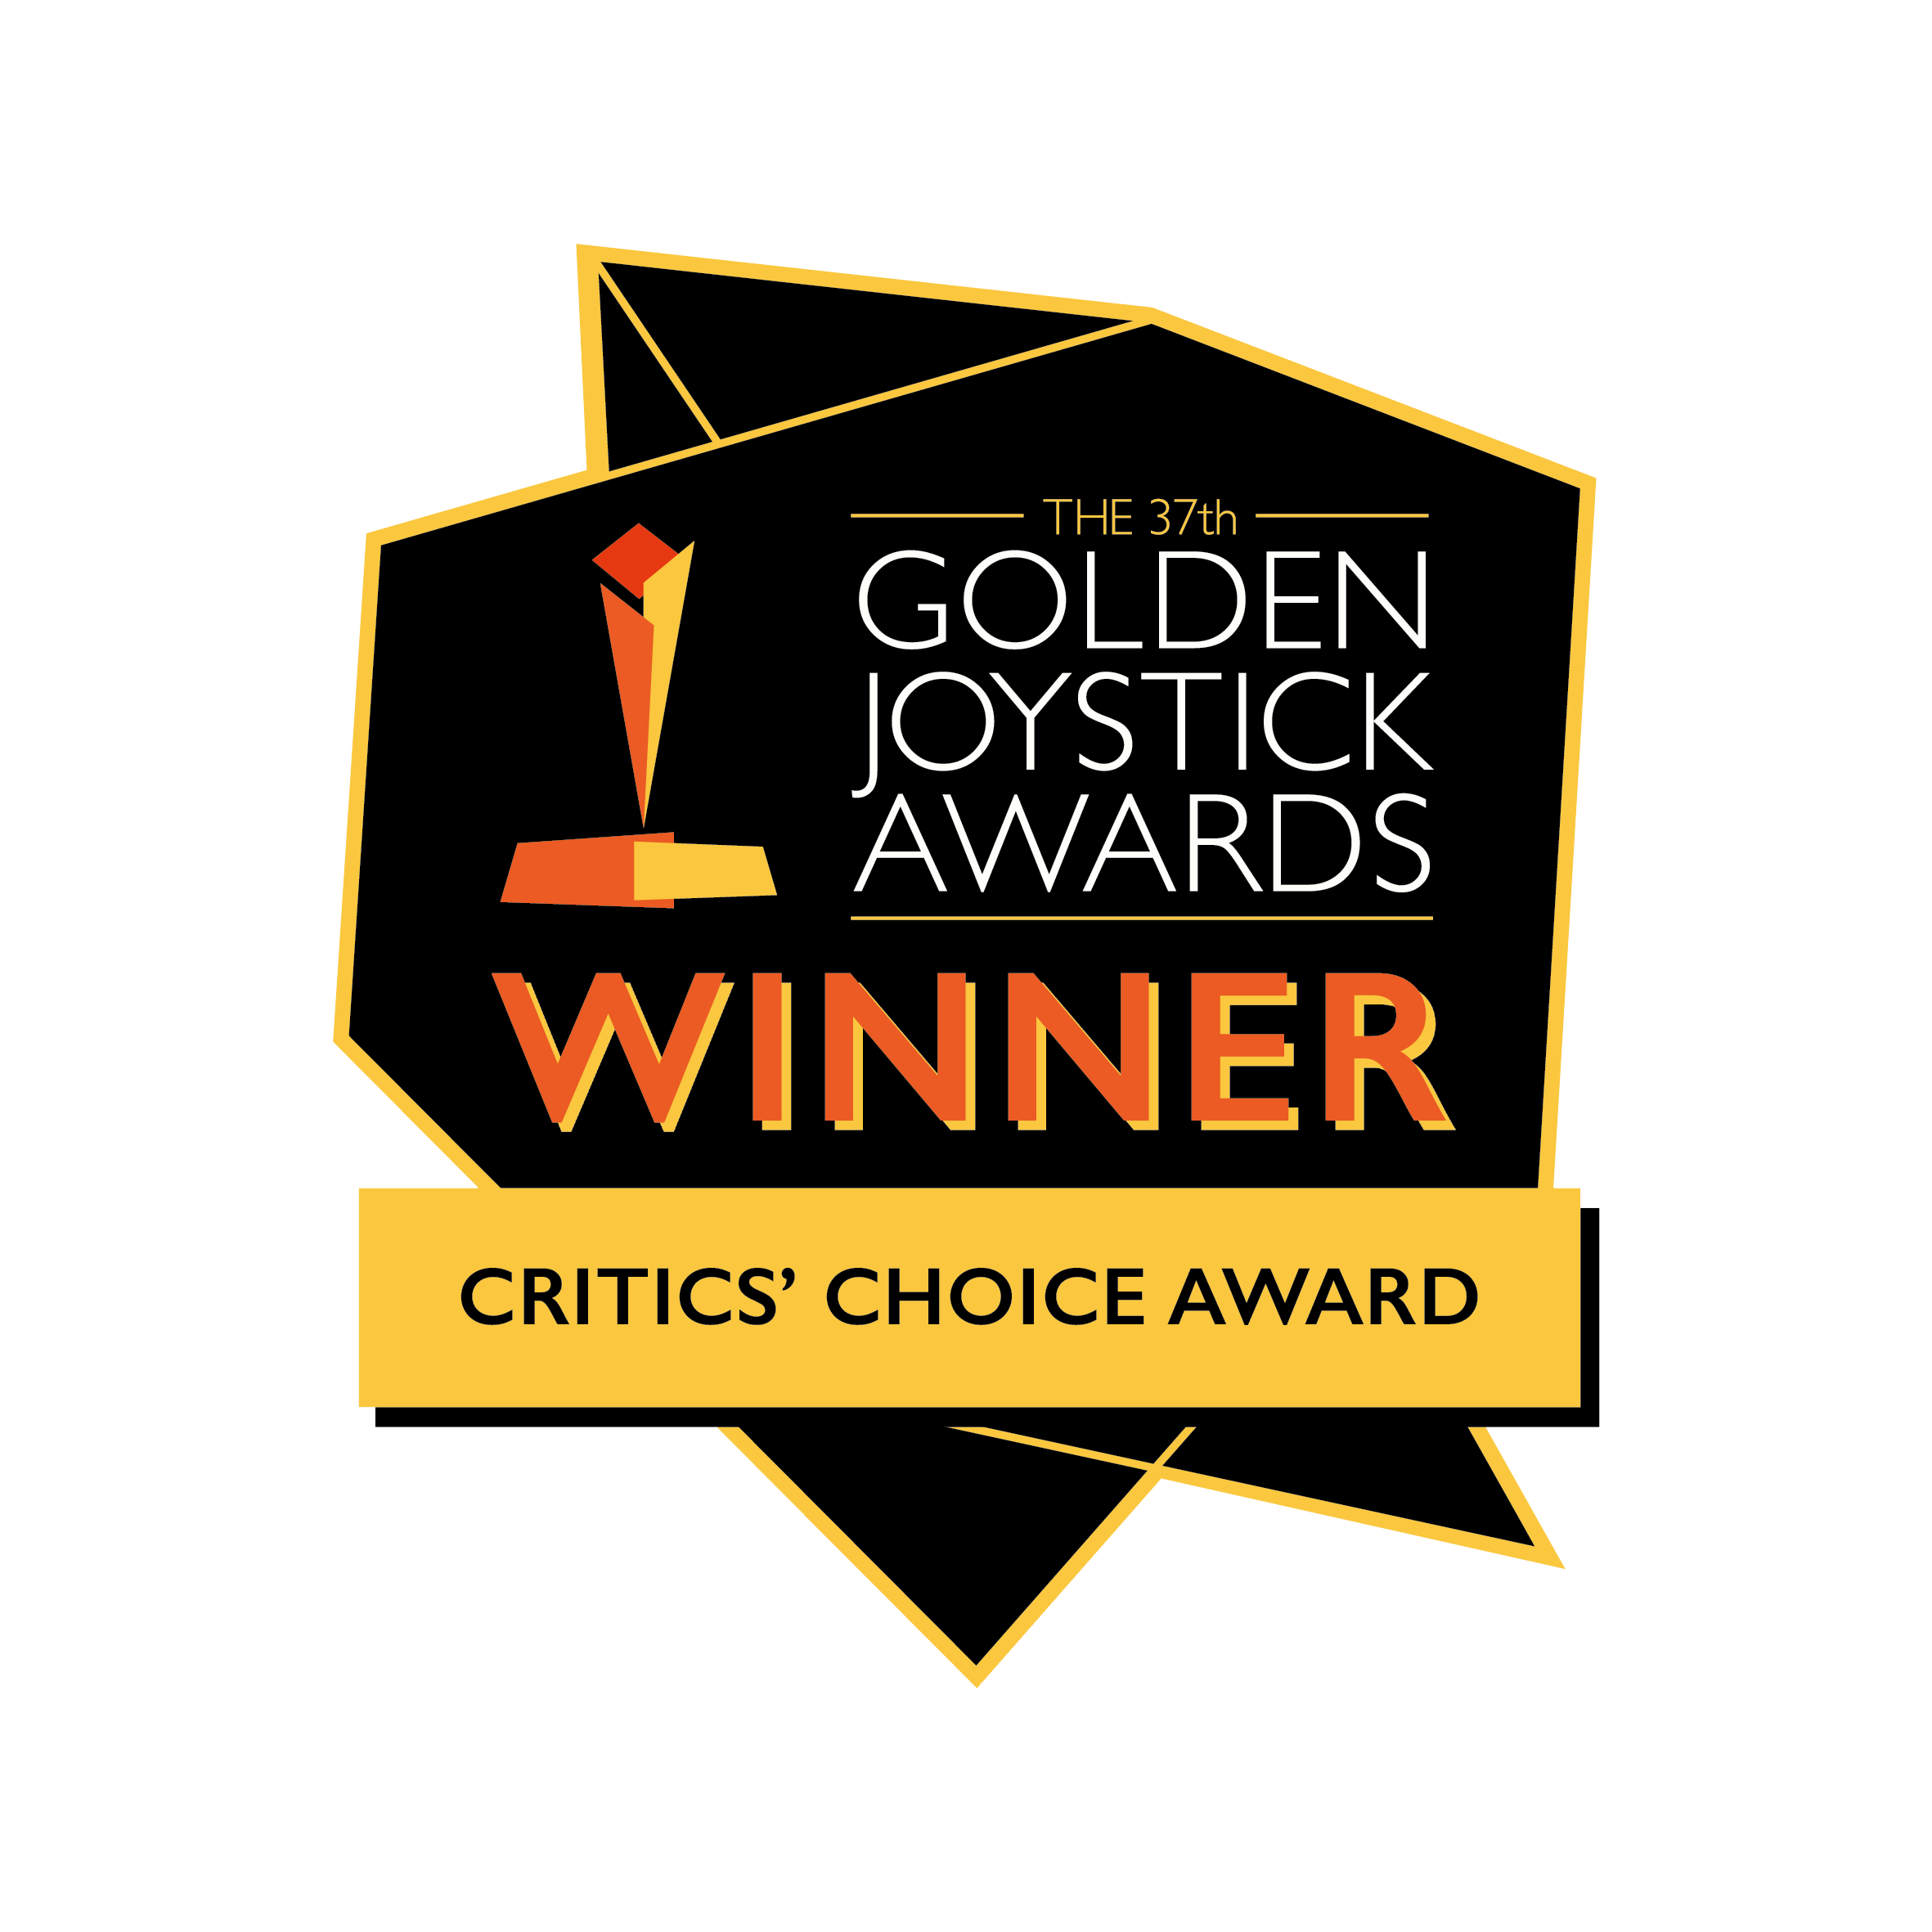 Golden Joystick Awards Winner